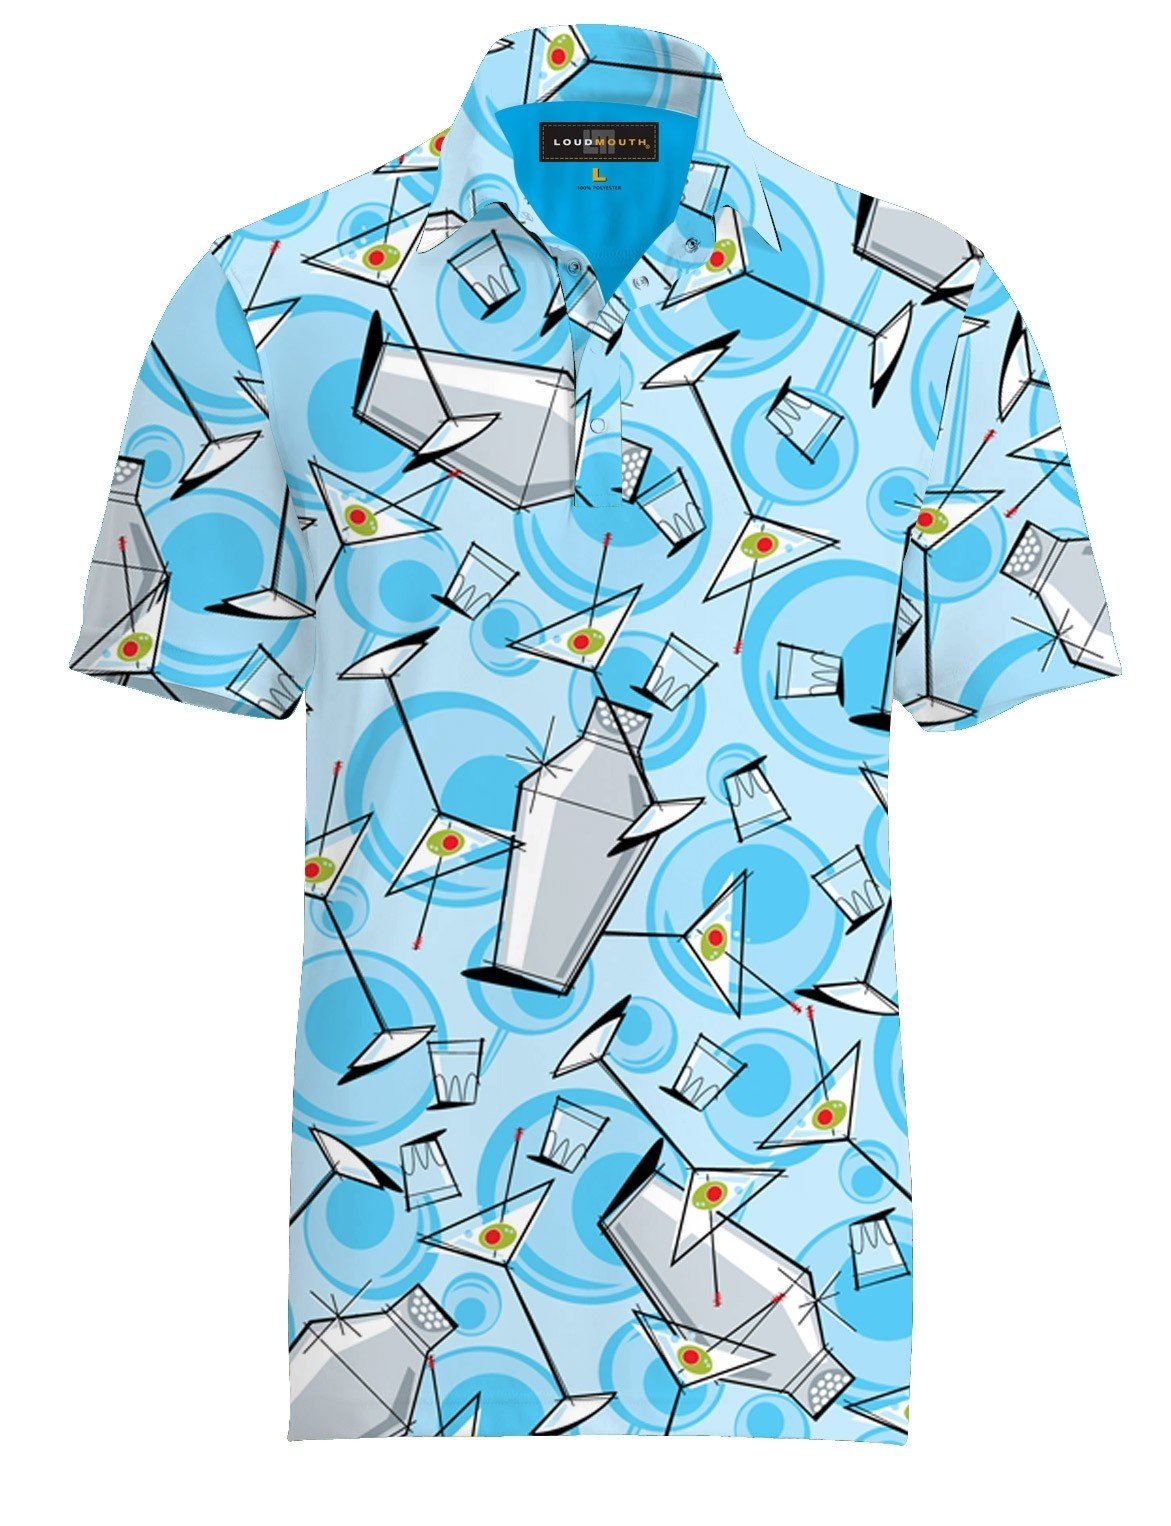 Partini Fancy Shirt